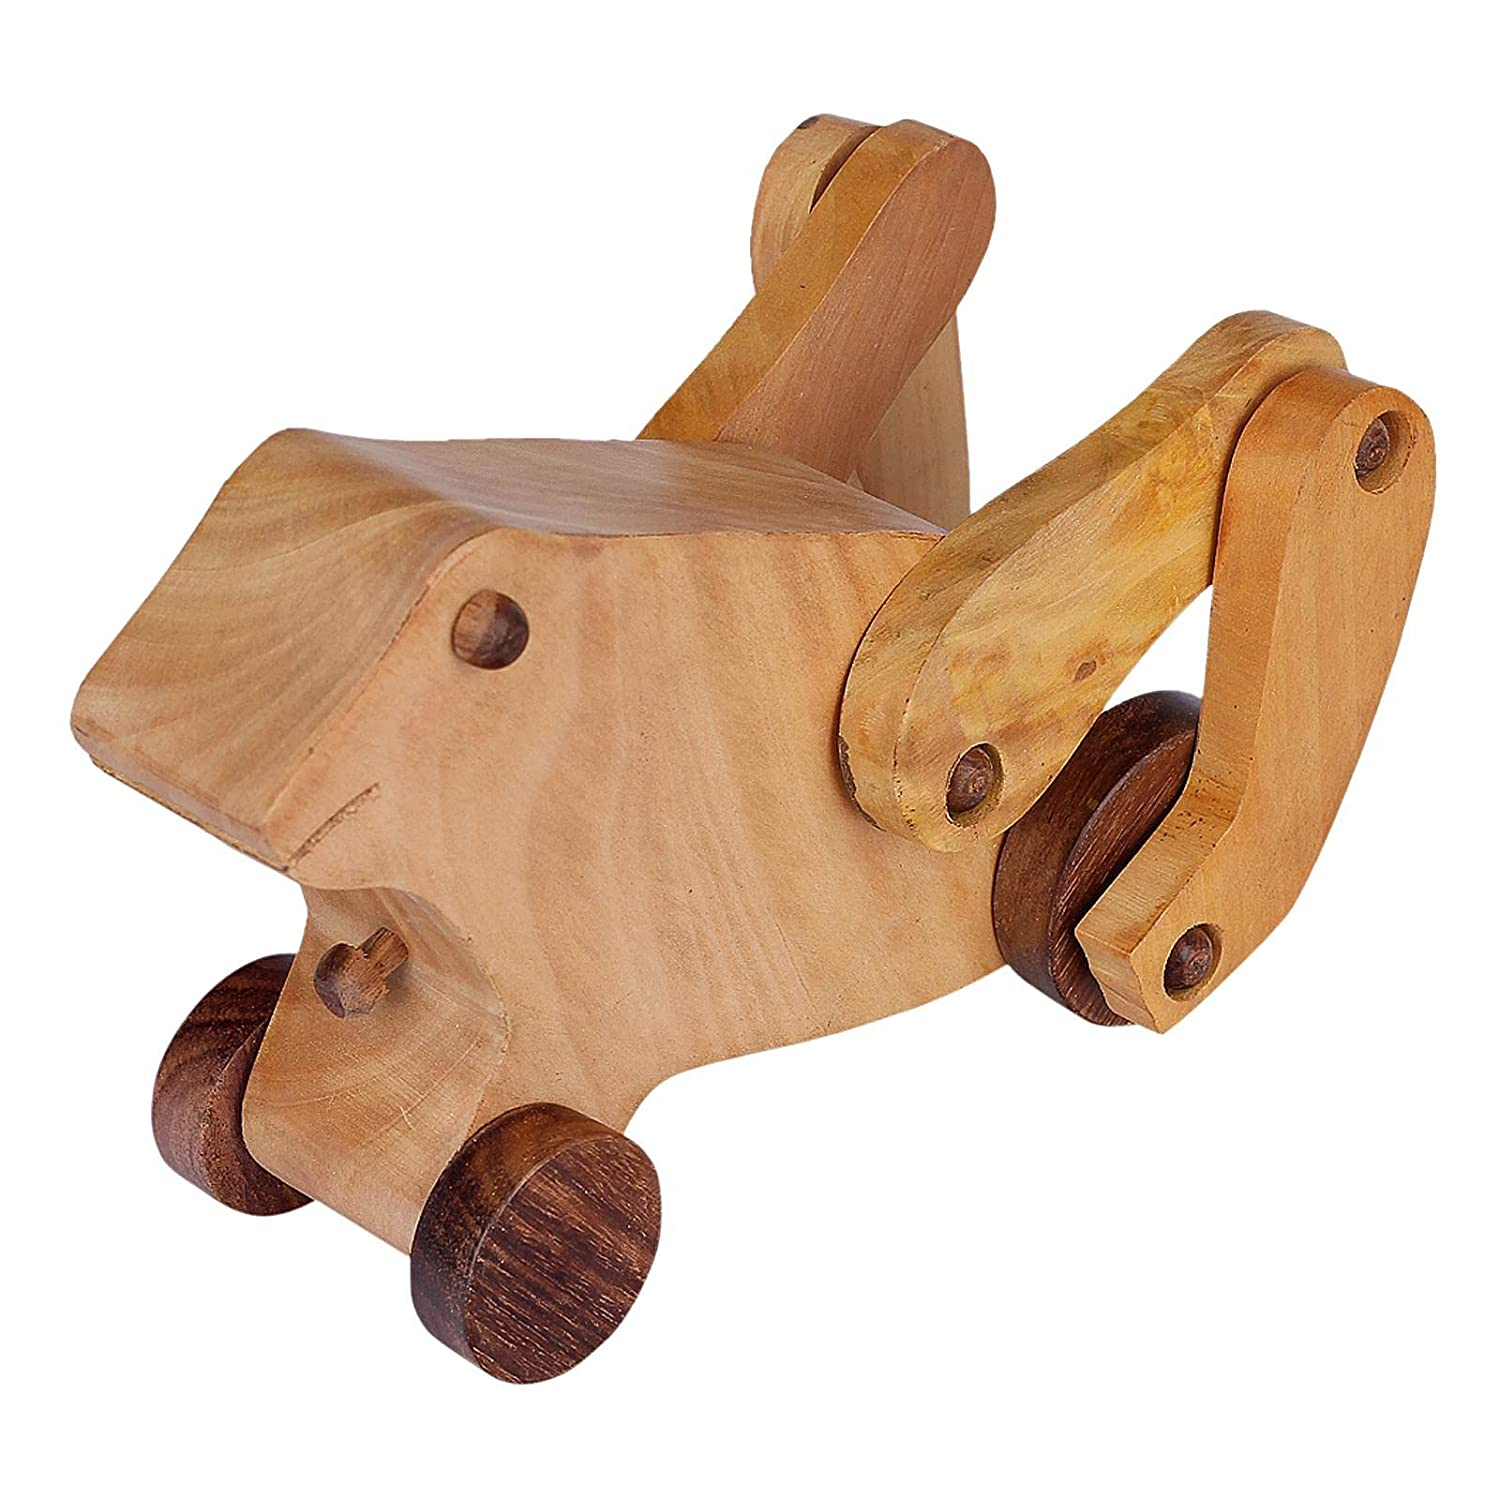 Handmade Wooden Pull Along Toy for Little Walkers in Frog Shape Without String MN wooden toy frog